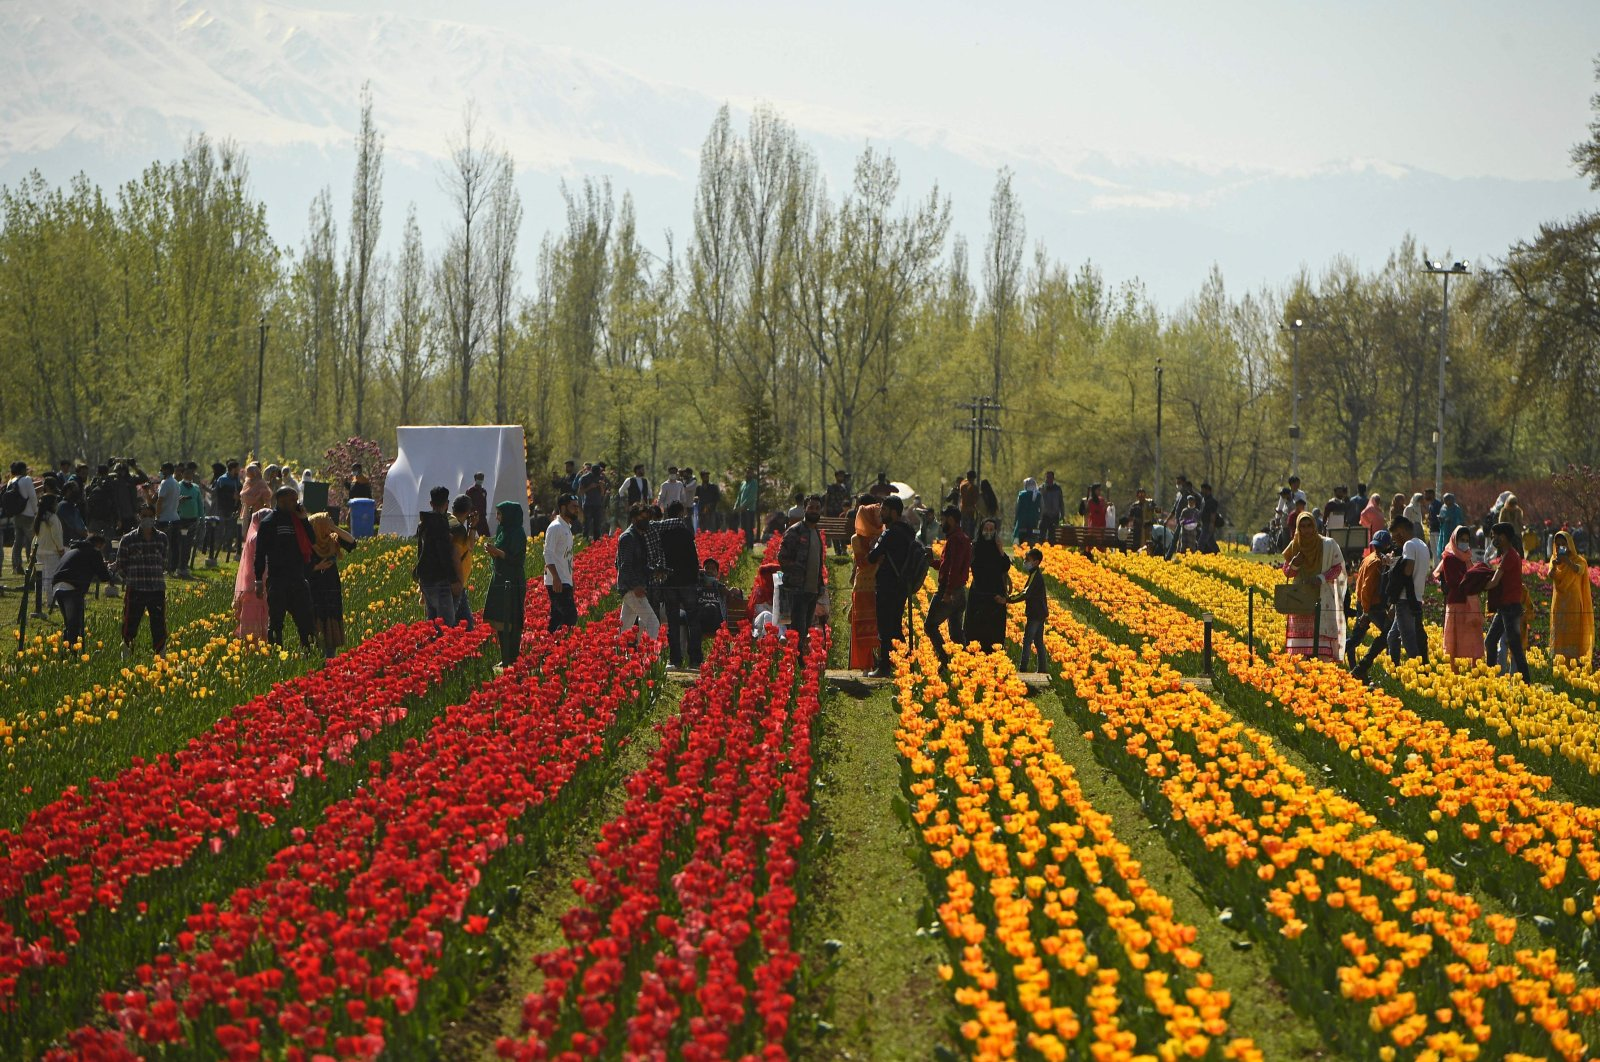 Visitors stroll around the grounds at the inauguration of Tulip festival at the Tulip garden in Srinagar, Kashmir, April 3, 2021. (AFP Photo)